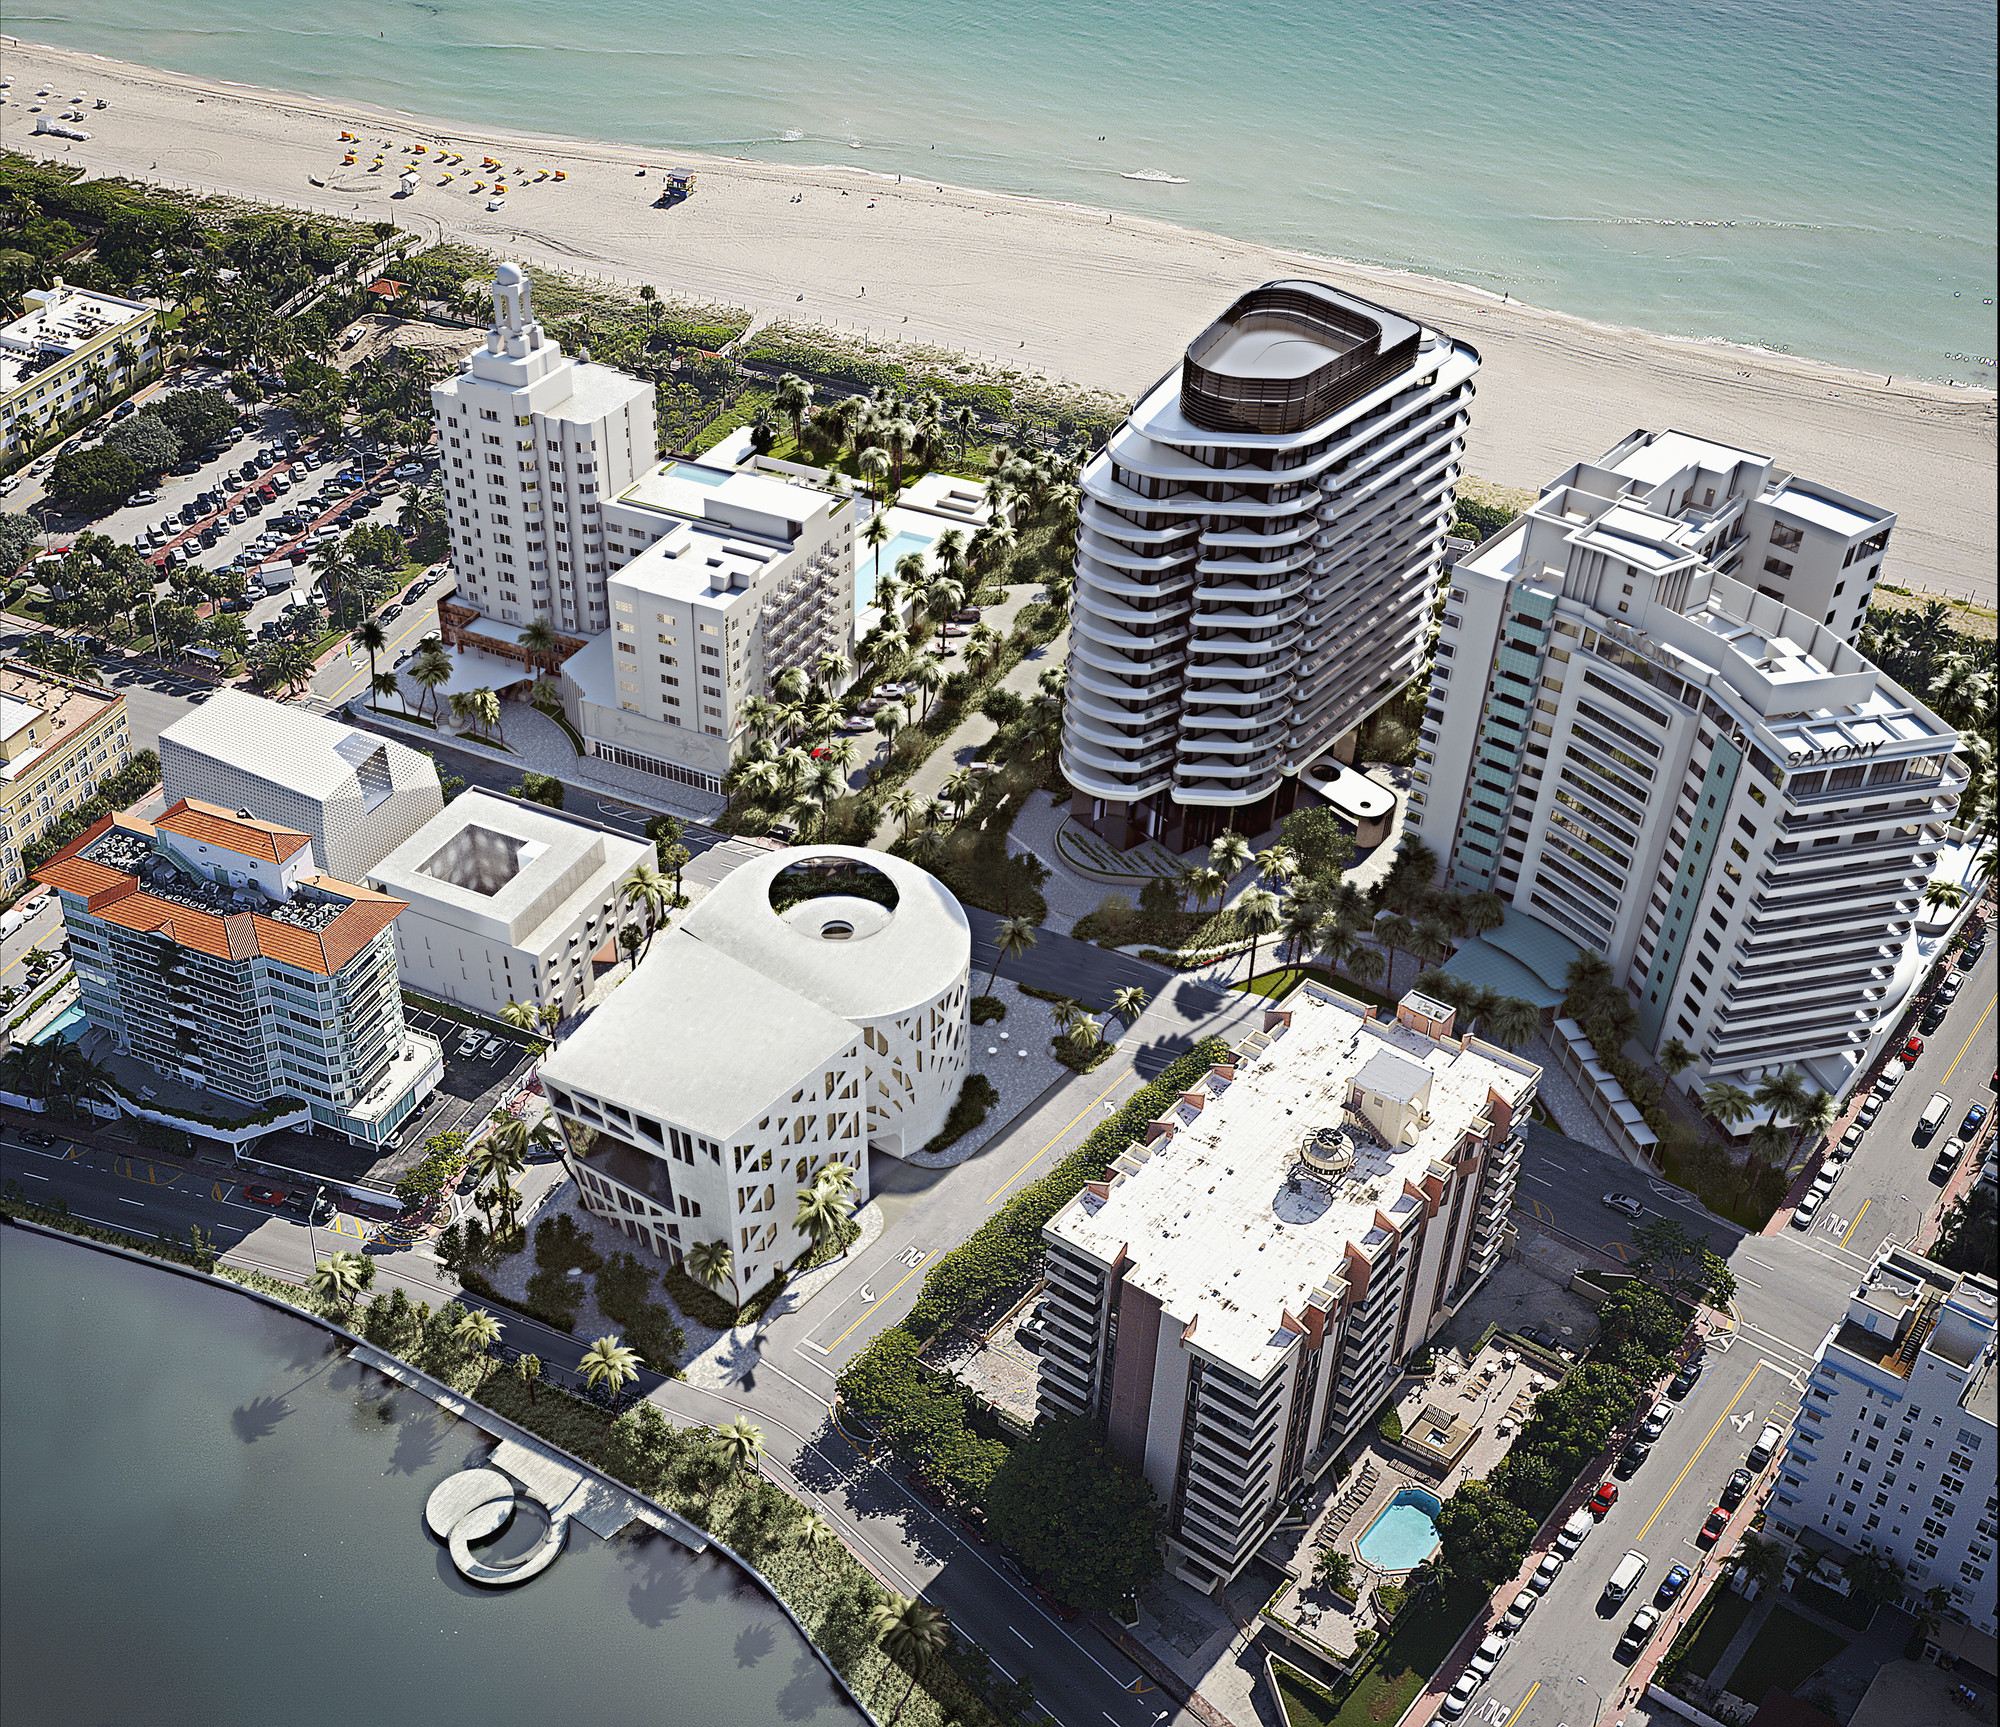 OMA, Foster + Partners, Heatherwick Studio Recruited to Design 'Faena District' of Miami Beach, Faena Art Center. Image Courtesy of Faena